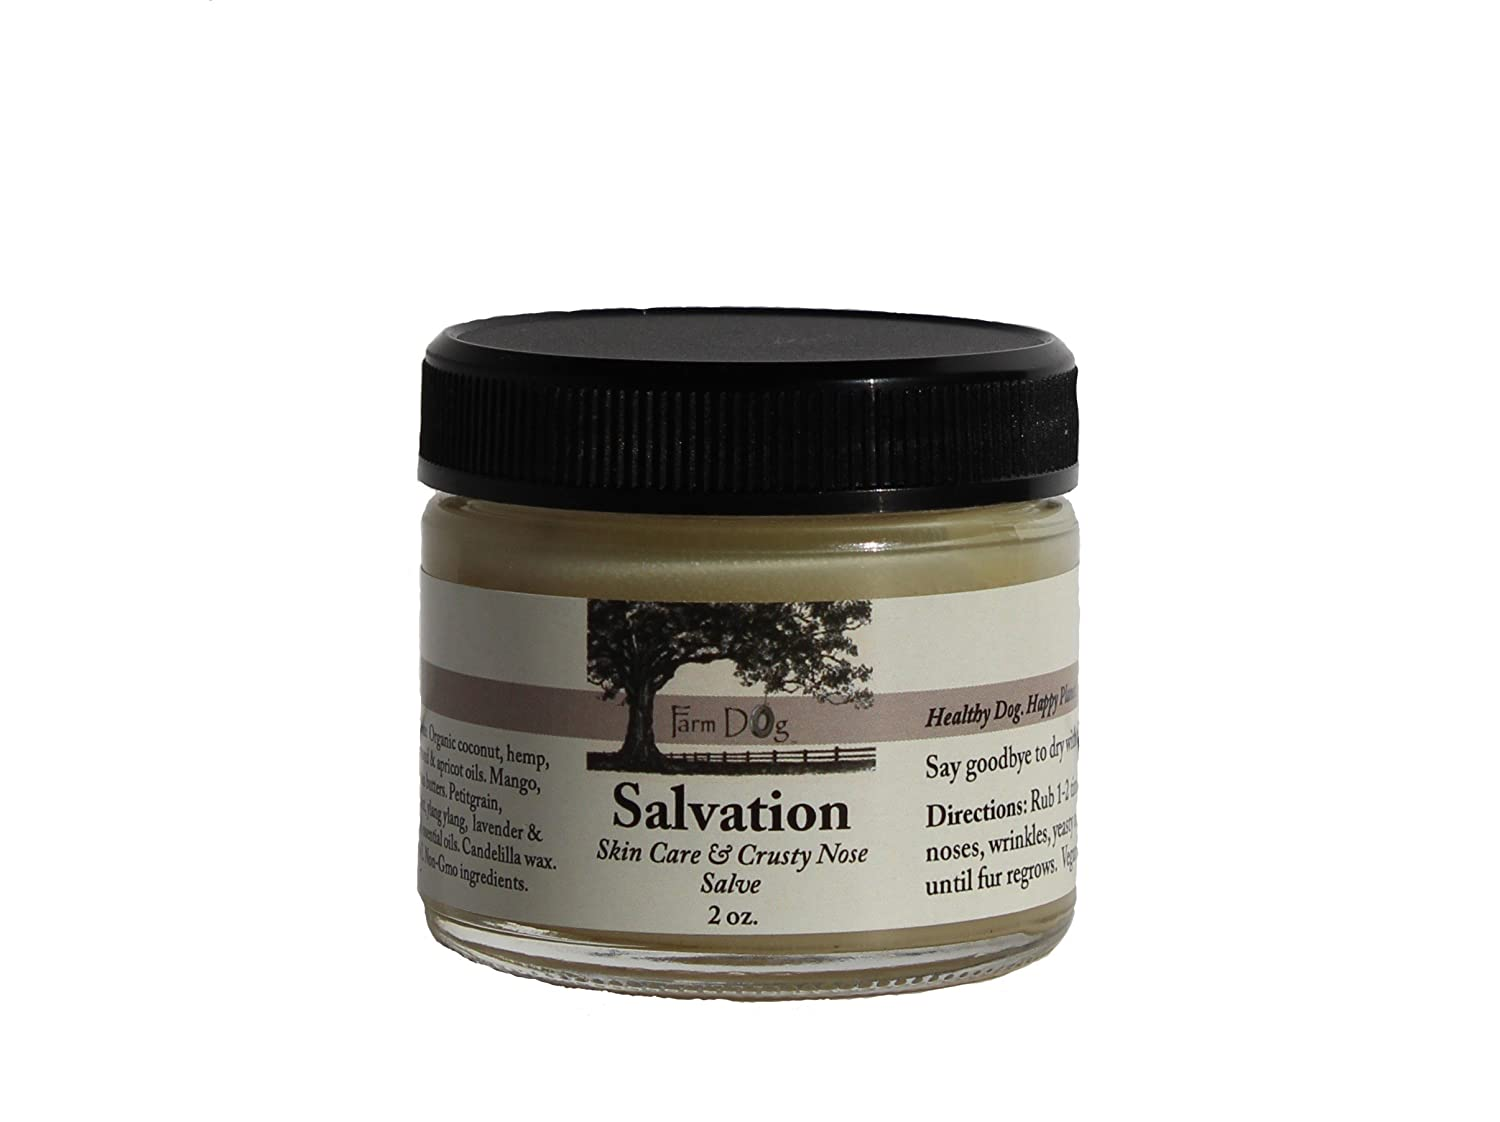 Farm Dog Naturals Salvation Skin Care Crusty Nose Balm – Herbs Remedies for Dogs